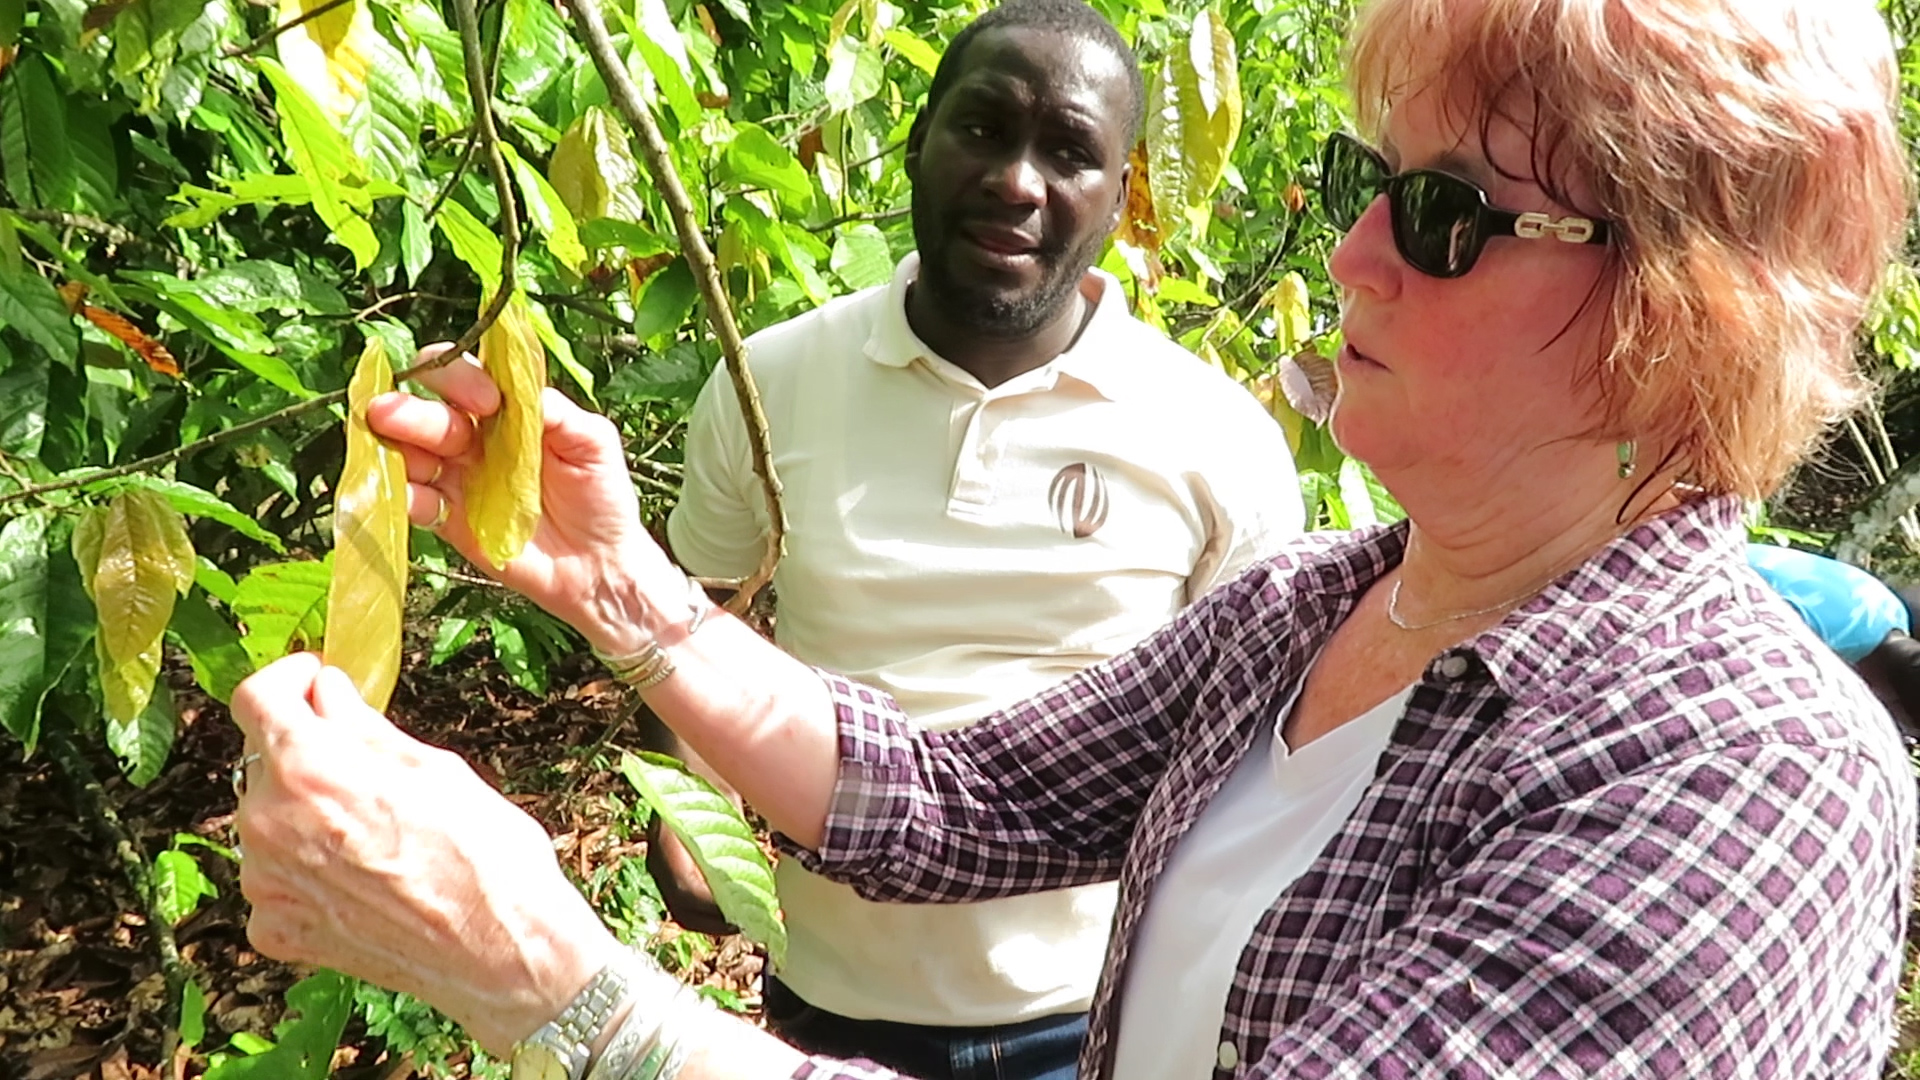 Judy Brown, a plant virologist in the UA's College of Agriculture and Life Sciences, is working with African scientists and farmers to create greater awareness of a disease that is killing cacao trees.